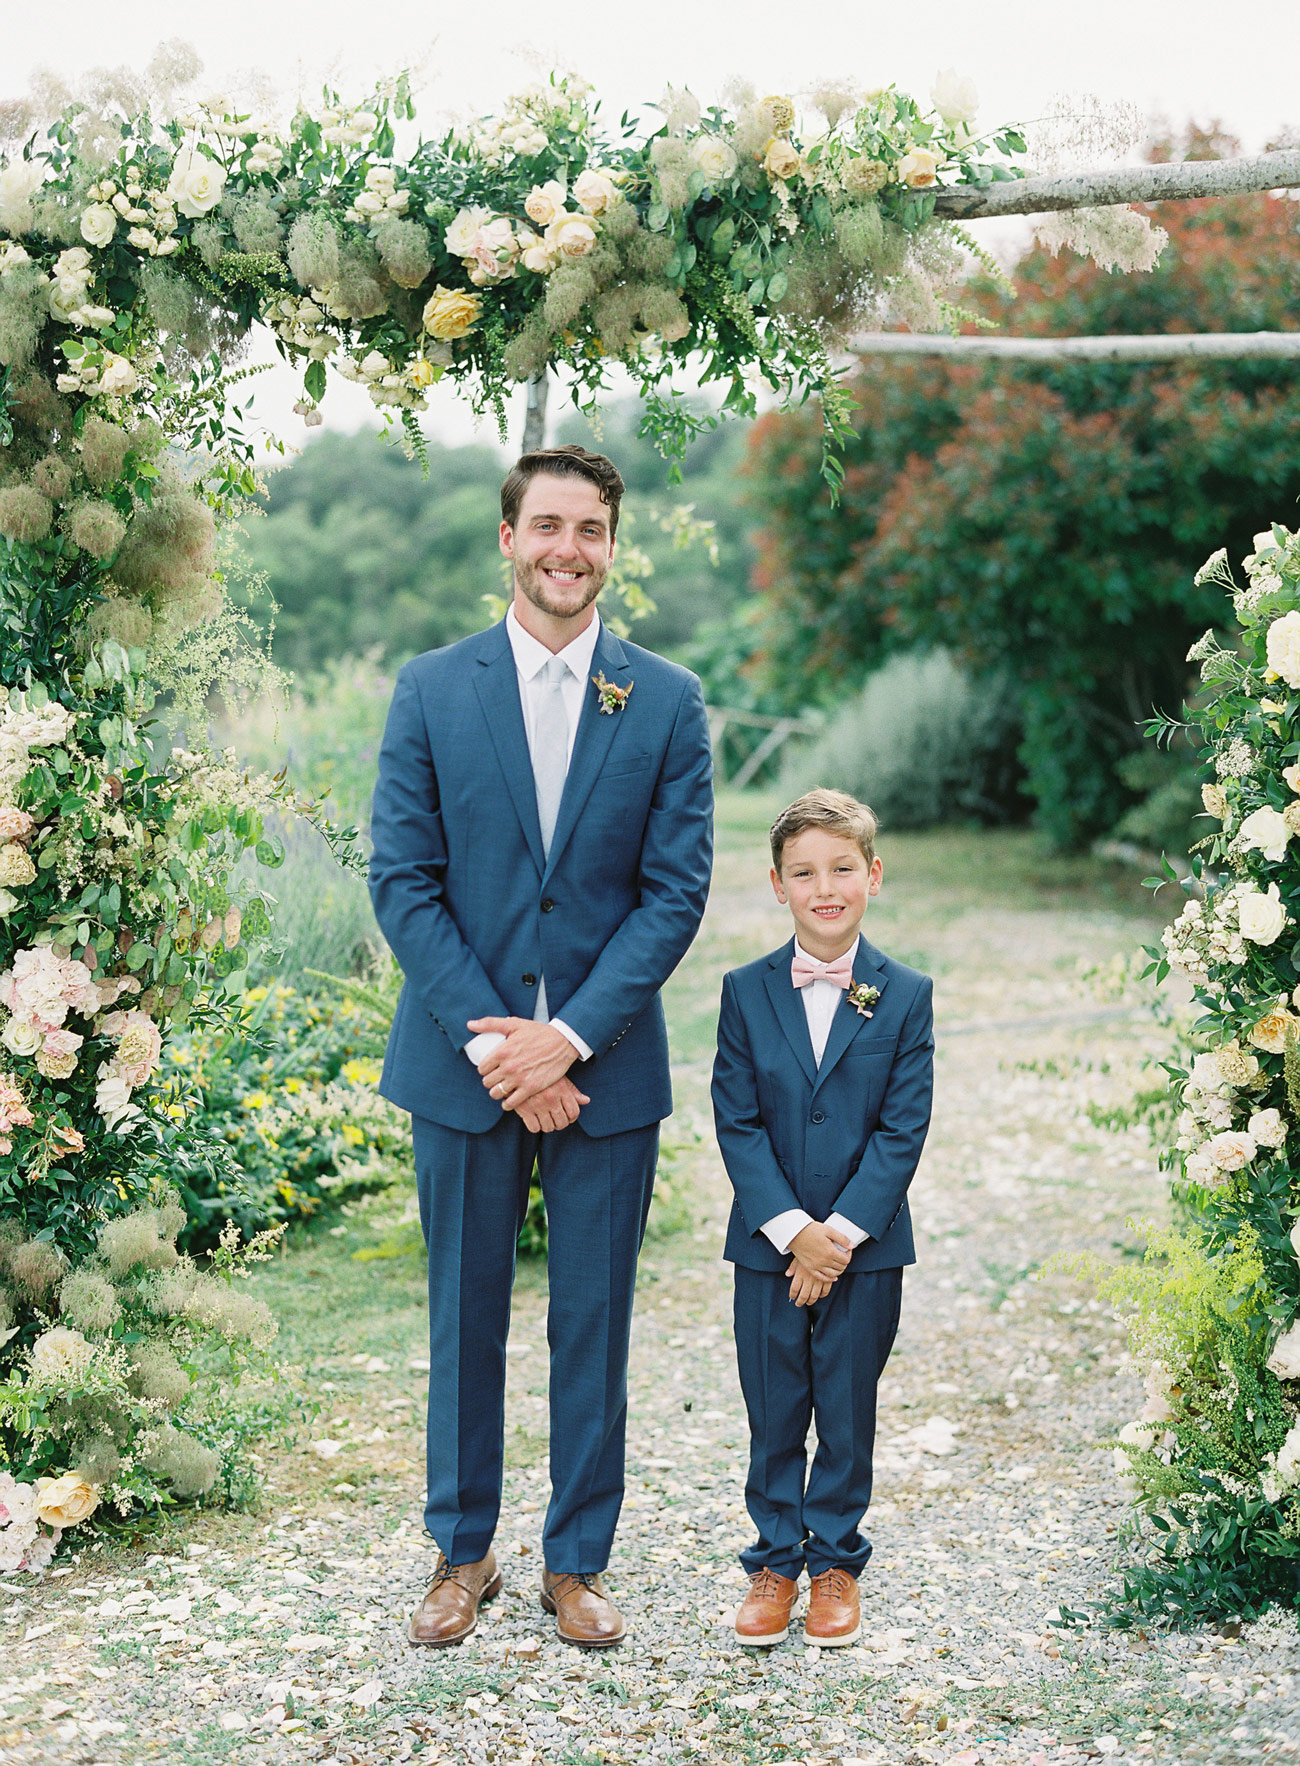 outdoor portrait groom and ring bearer